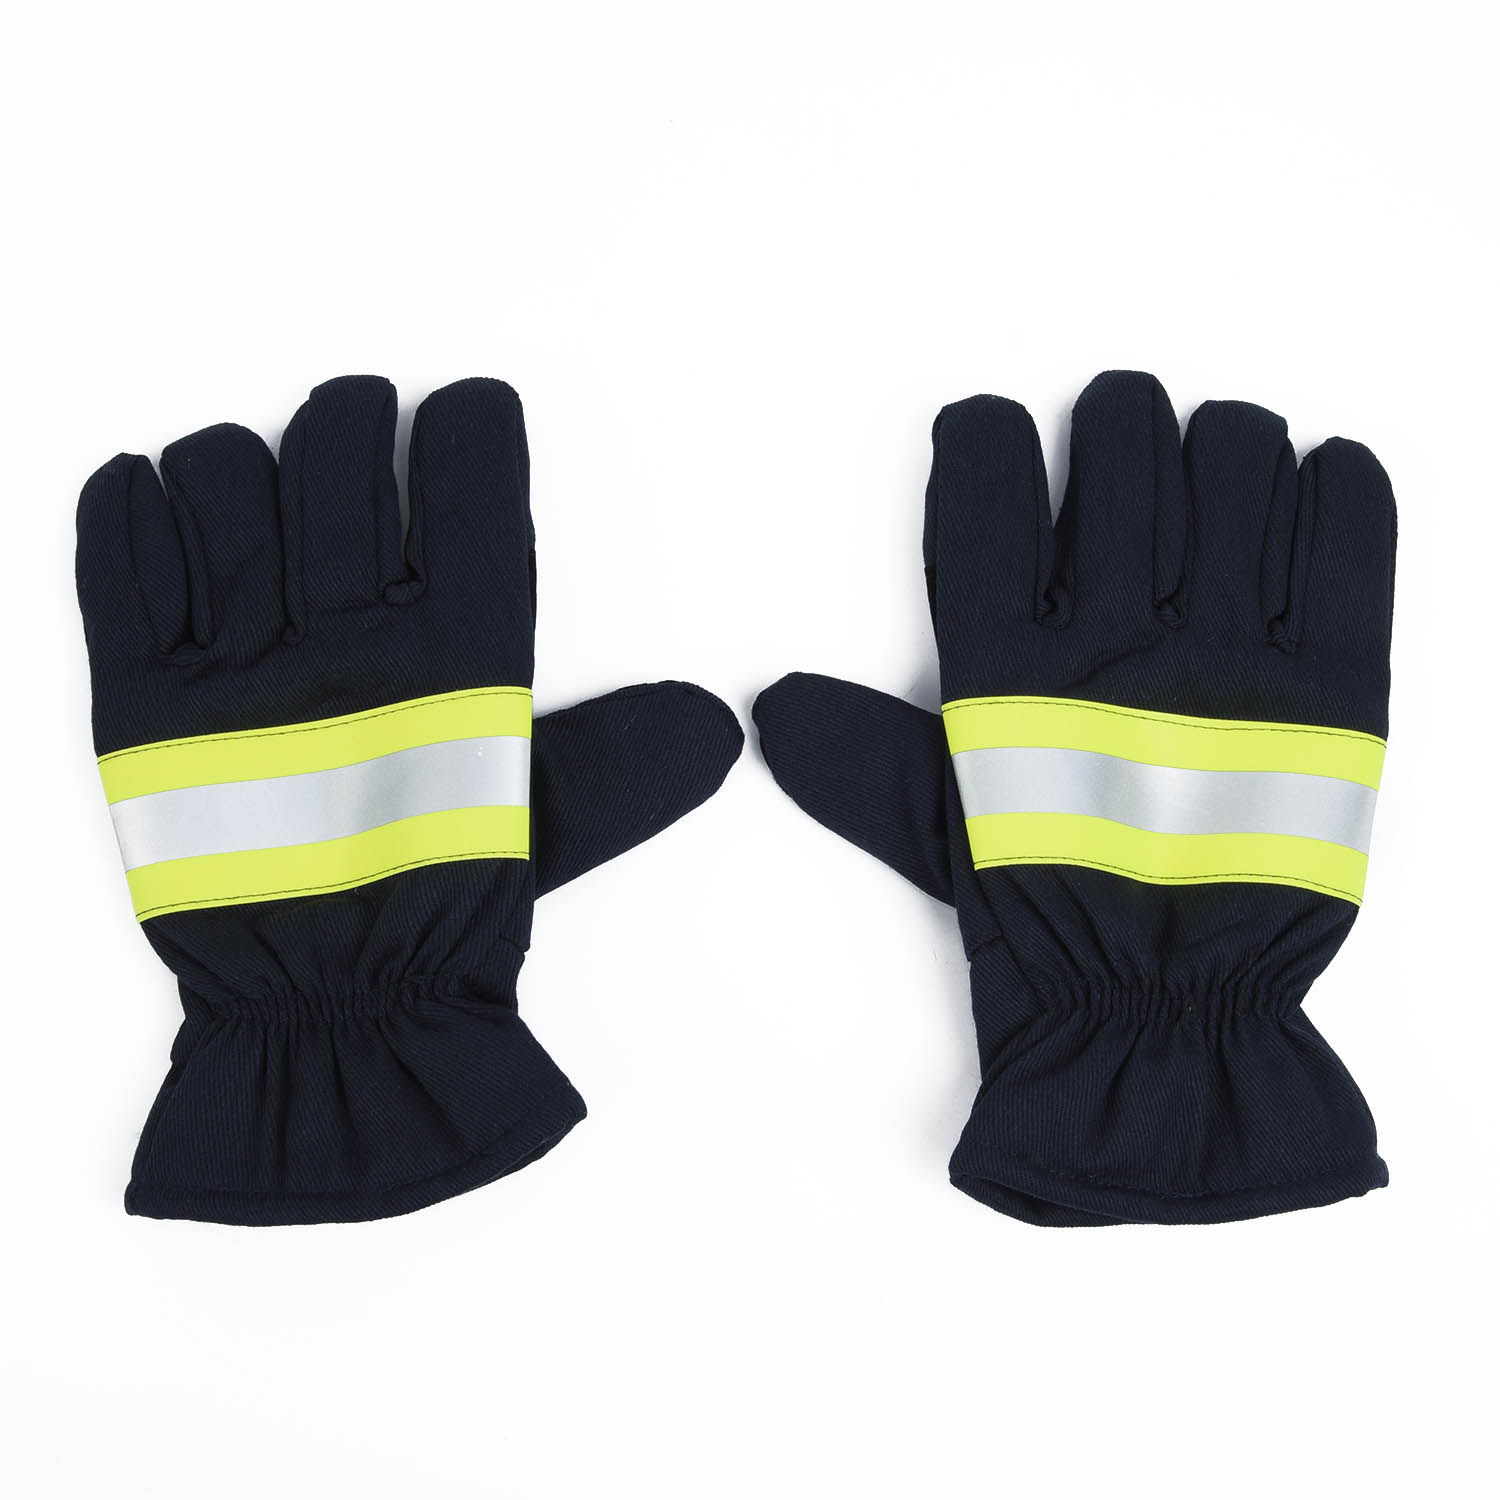 1 Pair Motorcycle NEW Protection Gloves Heat-resistant Non-slip Wear-resistant Gloves F0L6 Multifunctional Gloves latex gloves security protective five fingers wear resistant non slip 1 pair red and yellow for casting metallurgical